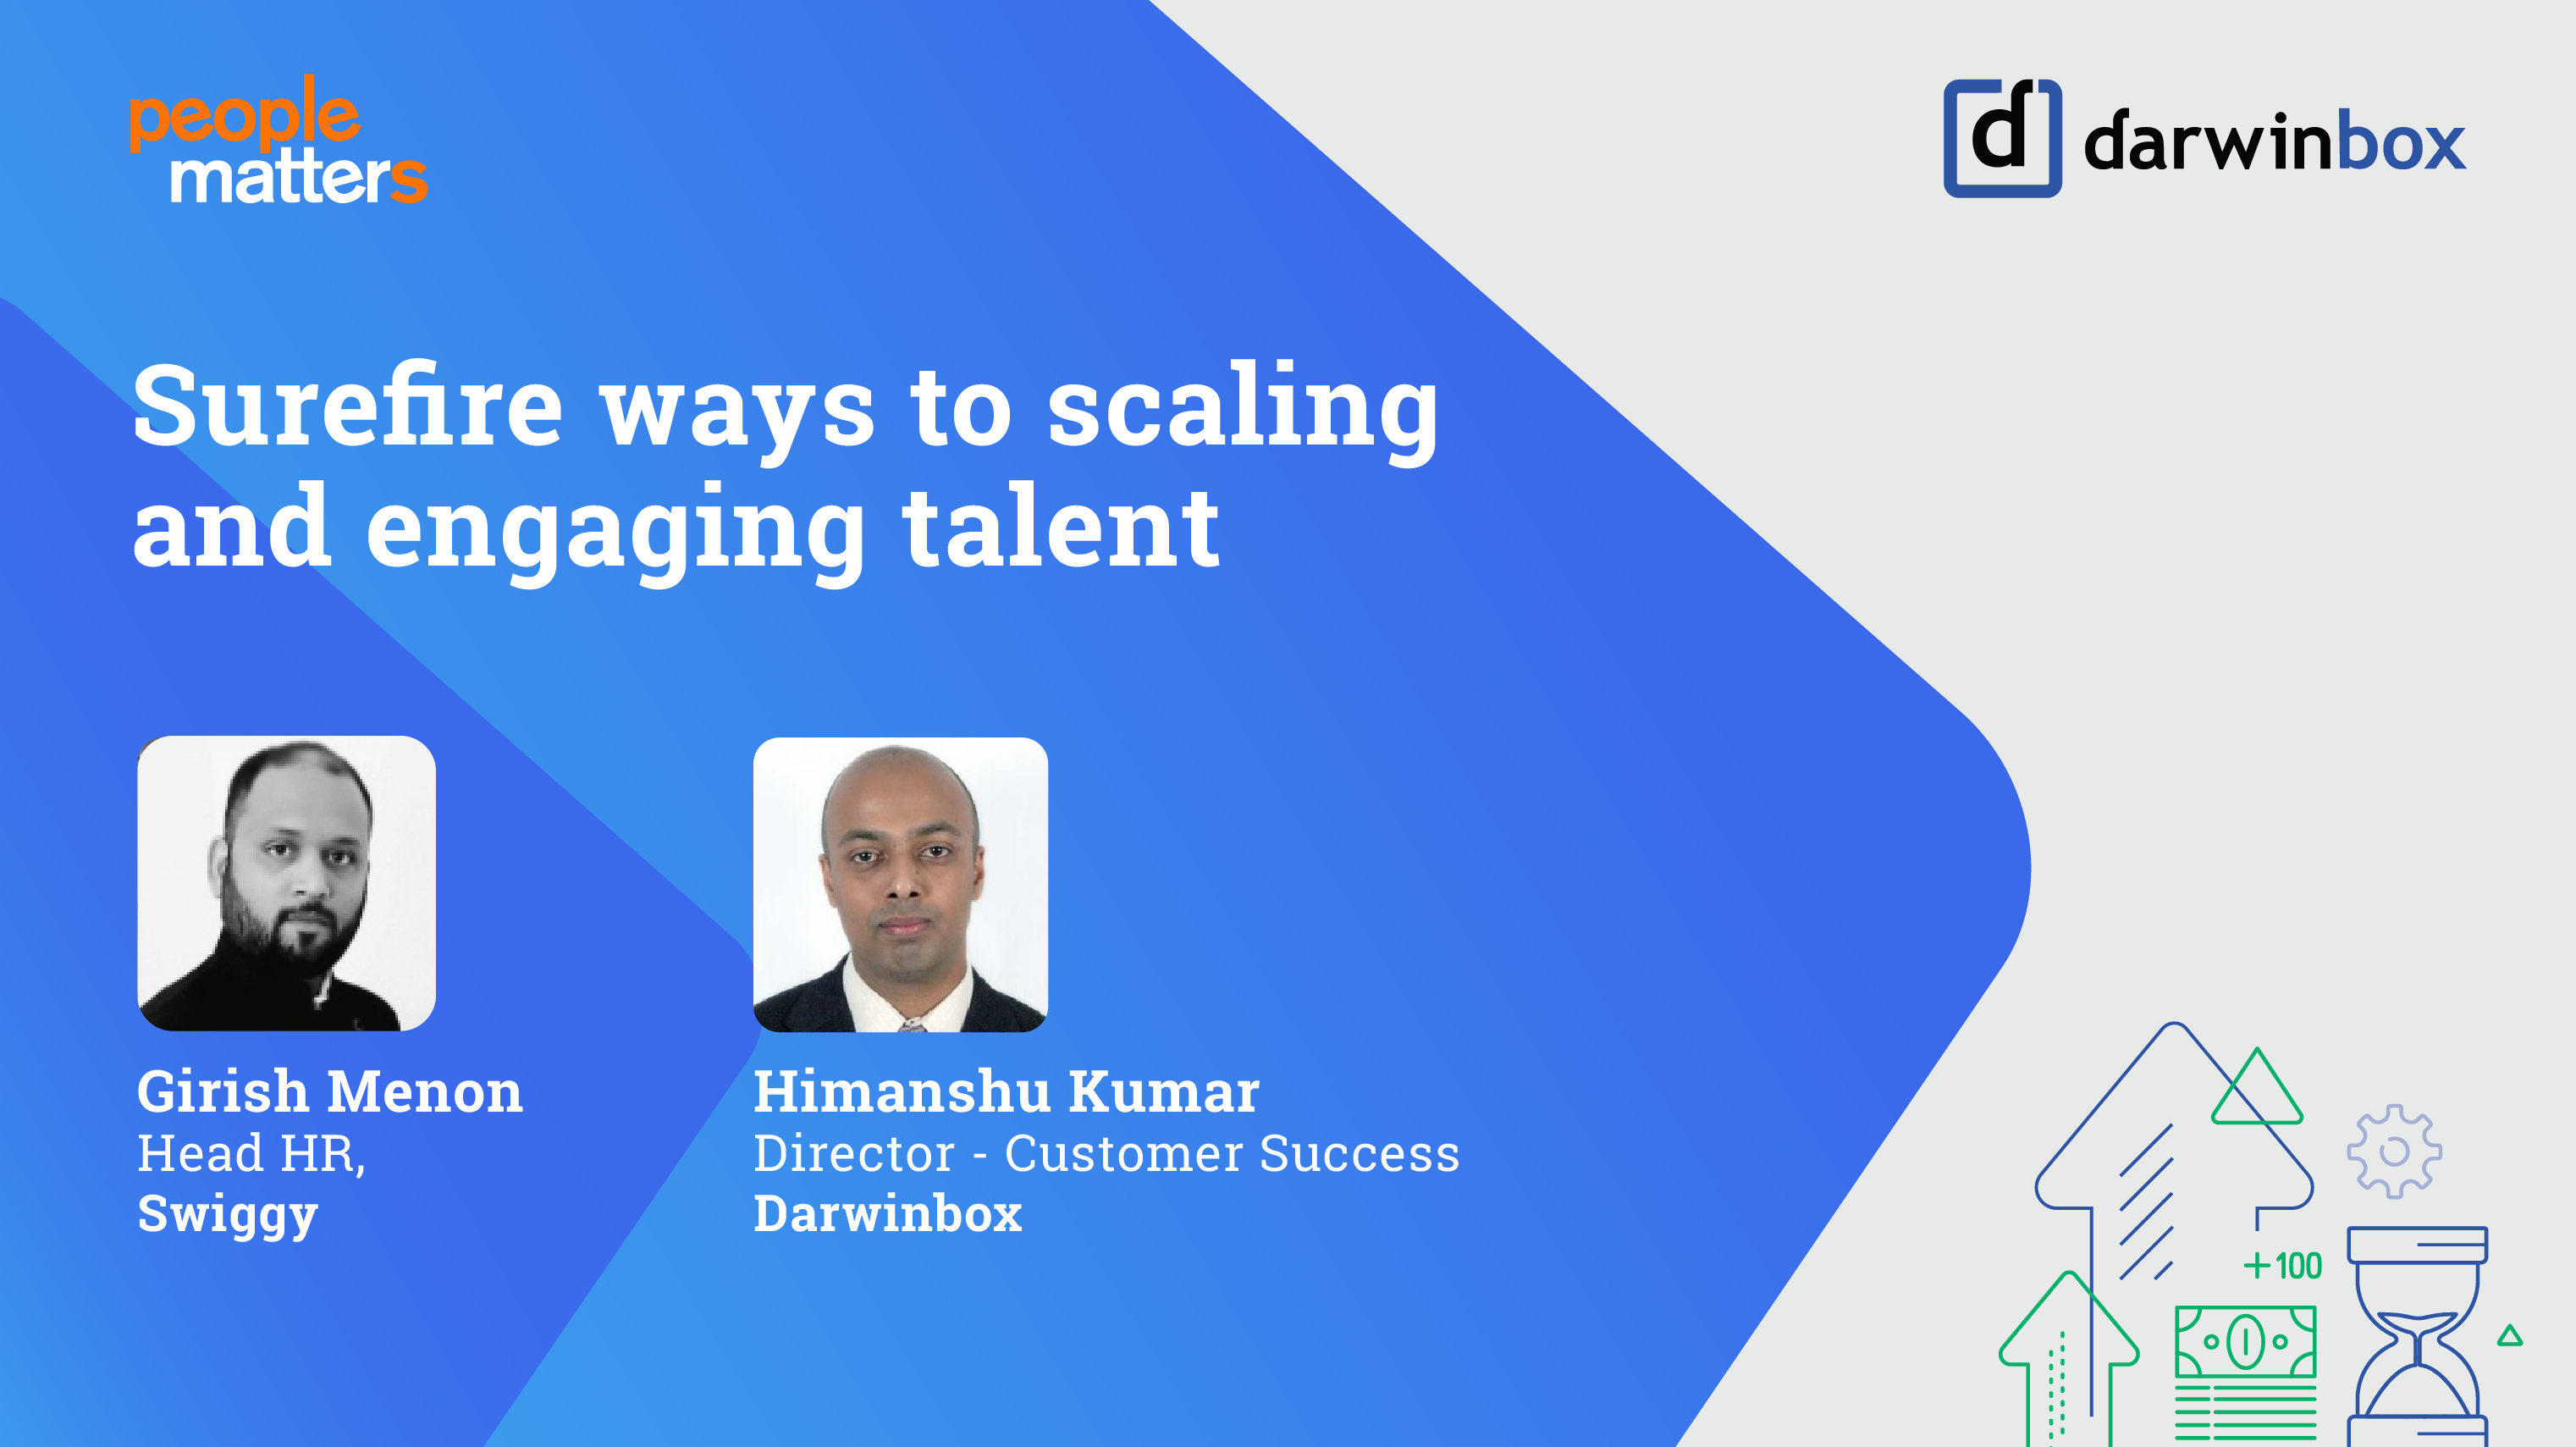 Webinar Highlight: Surefire ways to scaling & engaging talent